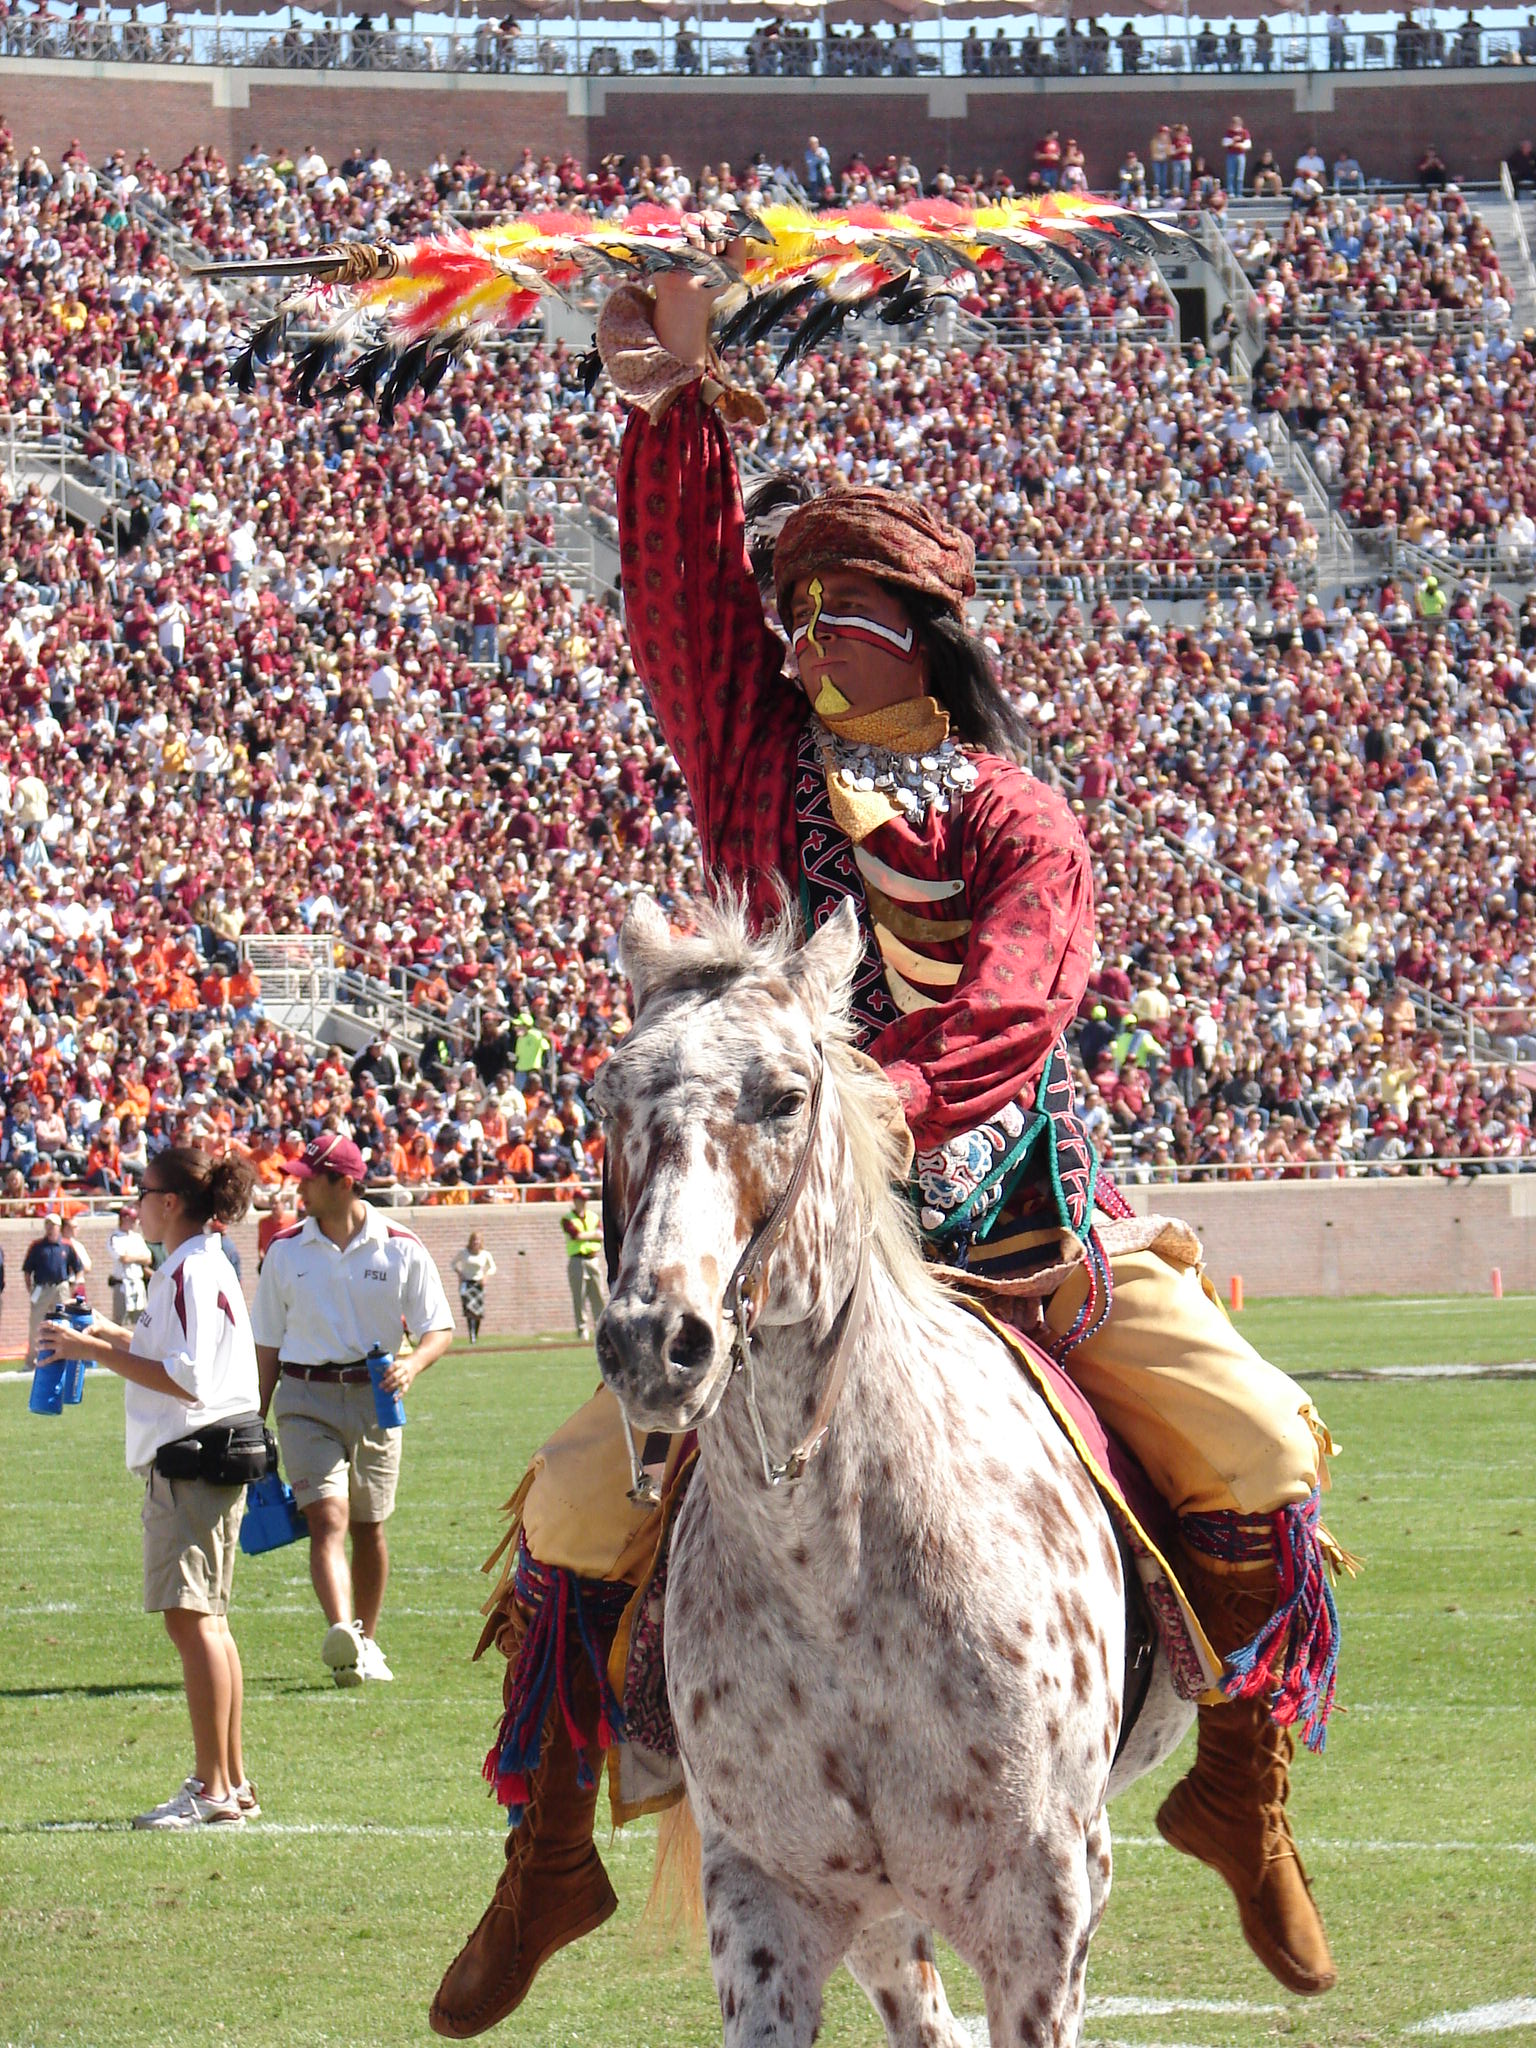 Chief_Osceola_on_Renegade_FSU